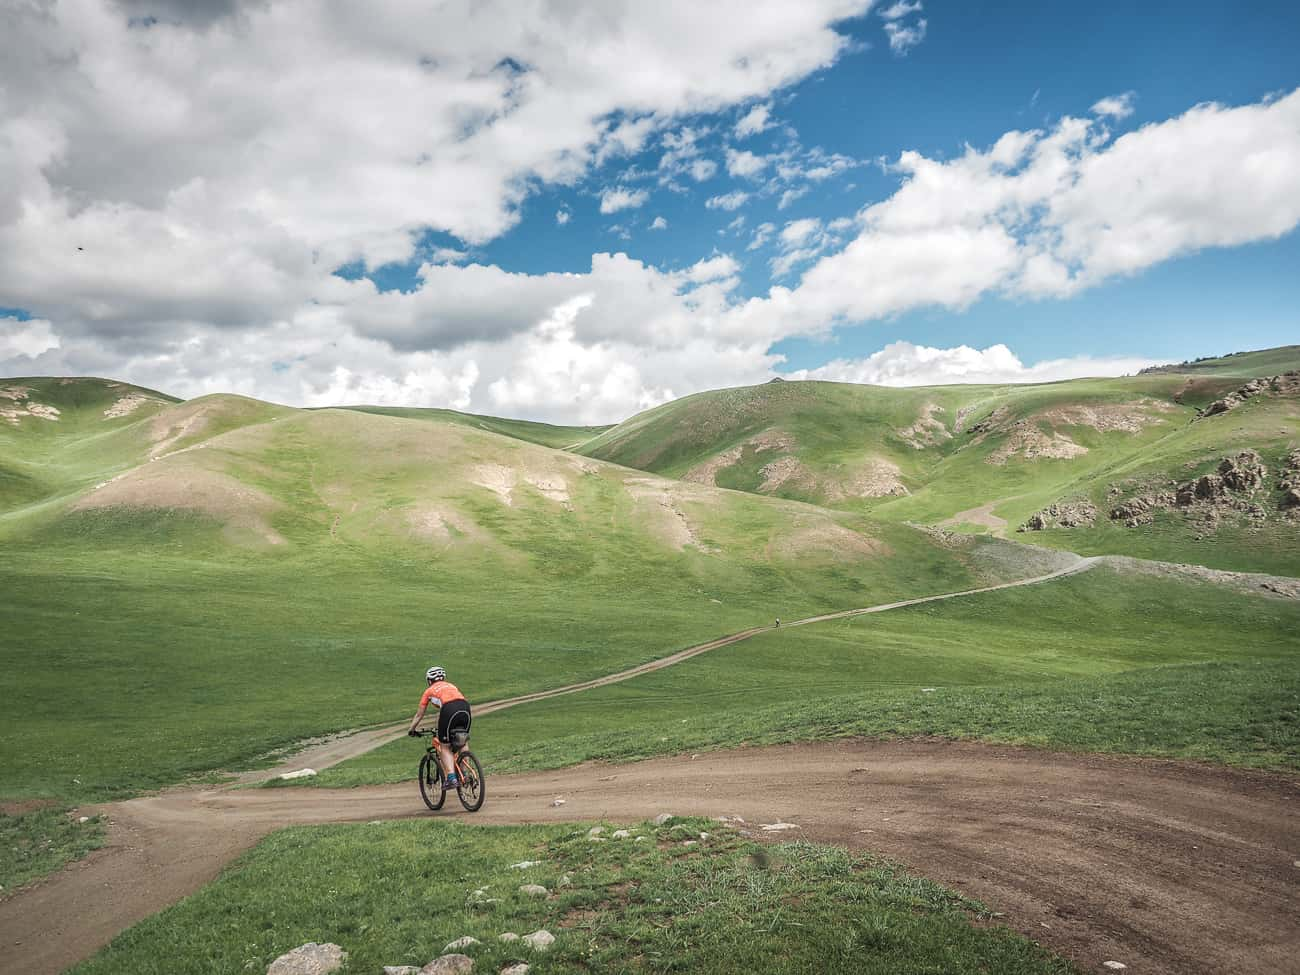 a cyclist on a hilly gravel road in Mongolia